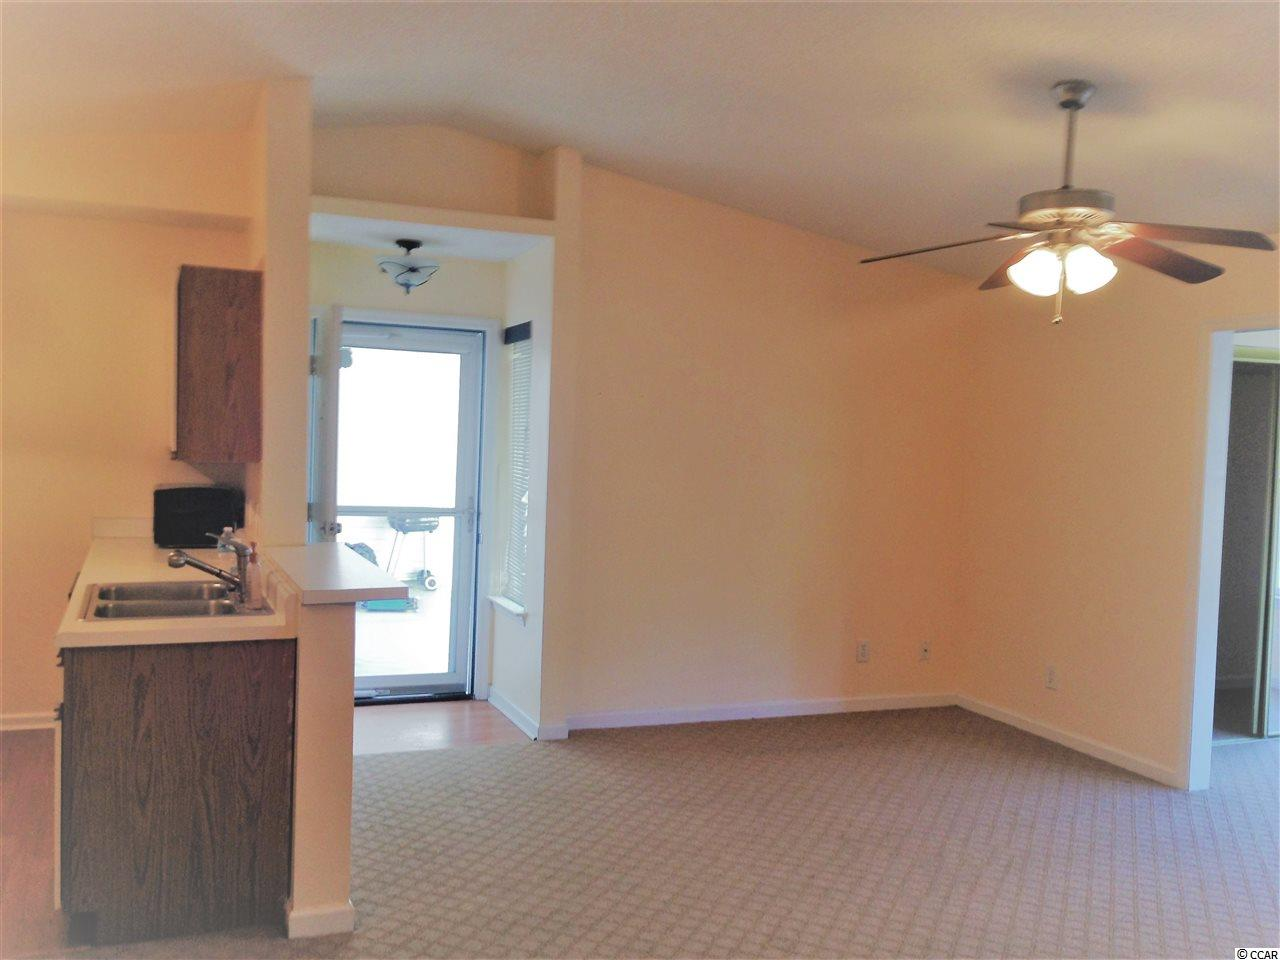 Huntingdon condo for sale in Surfside Beach, SC